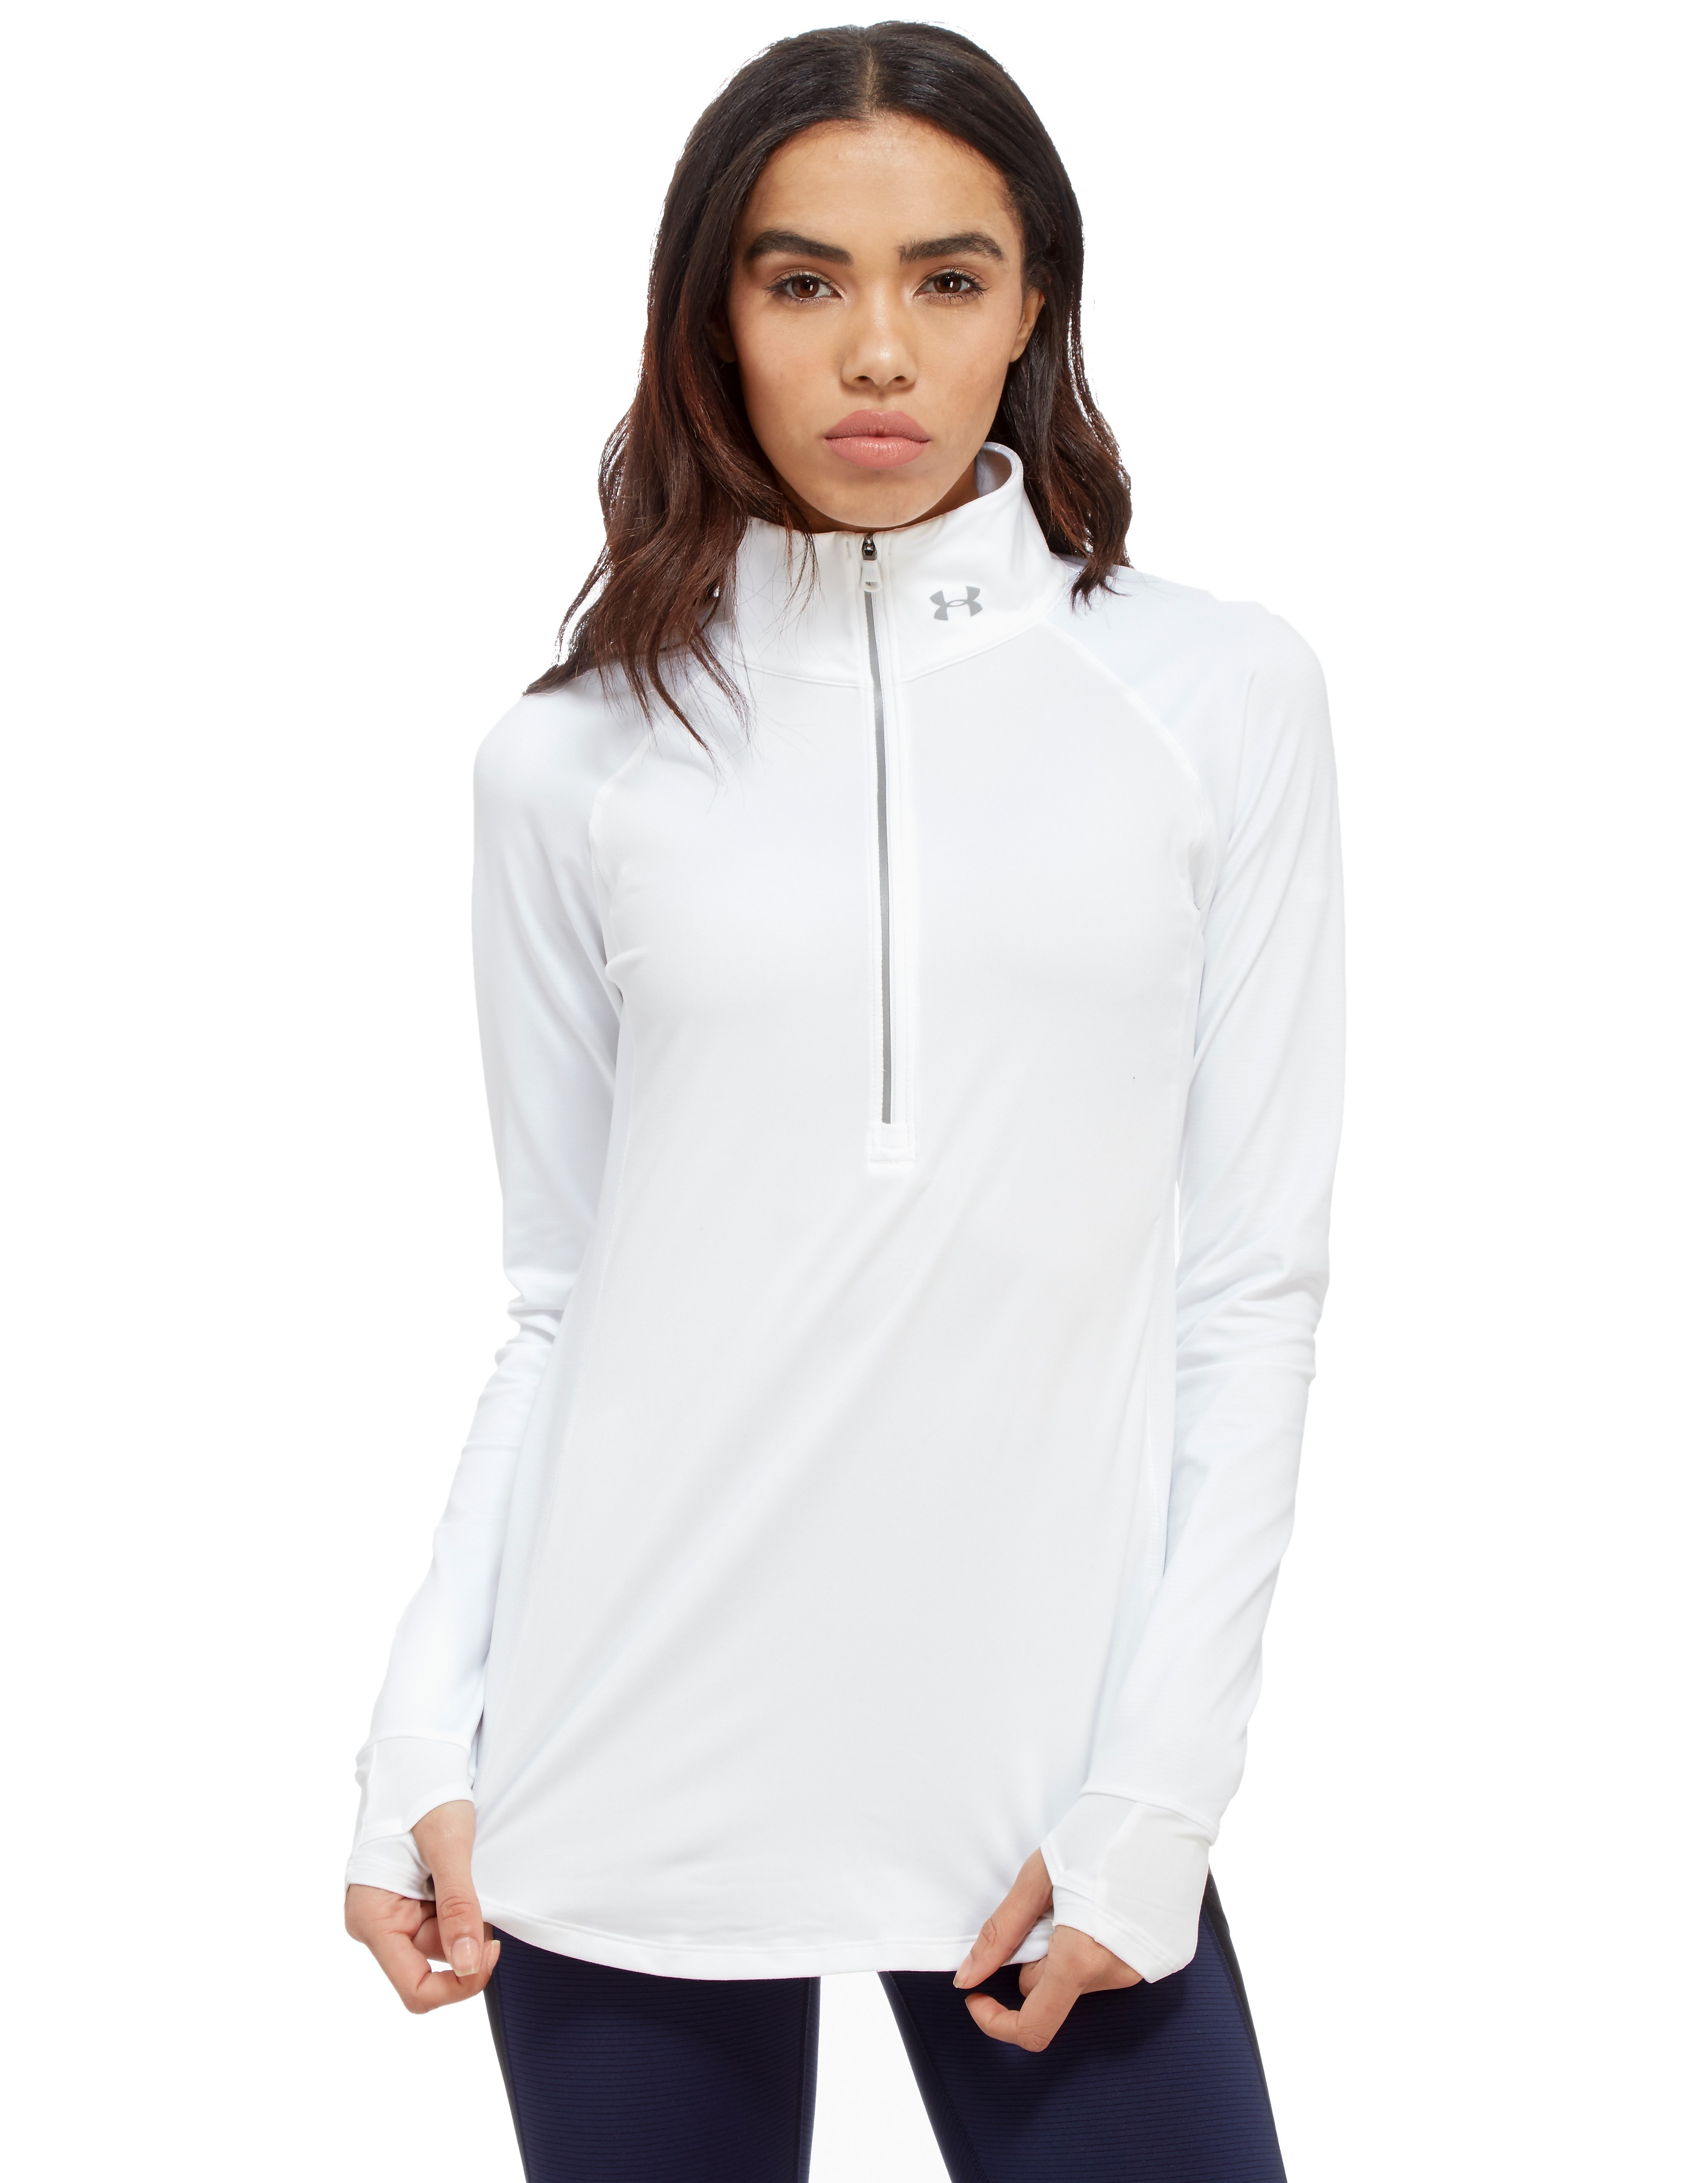 Under Armour Run True 1/2 Zip Top